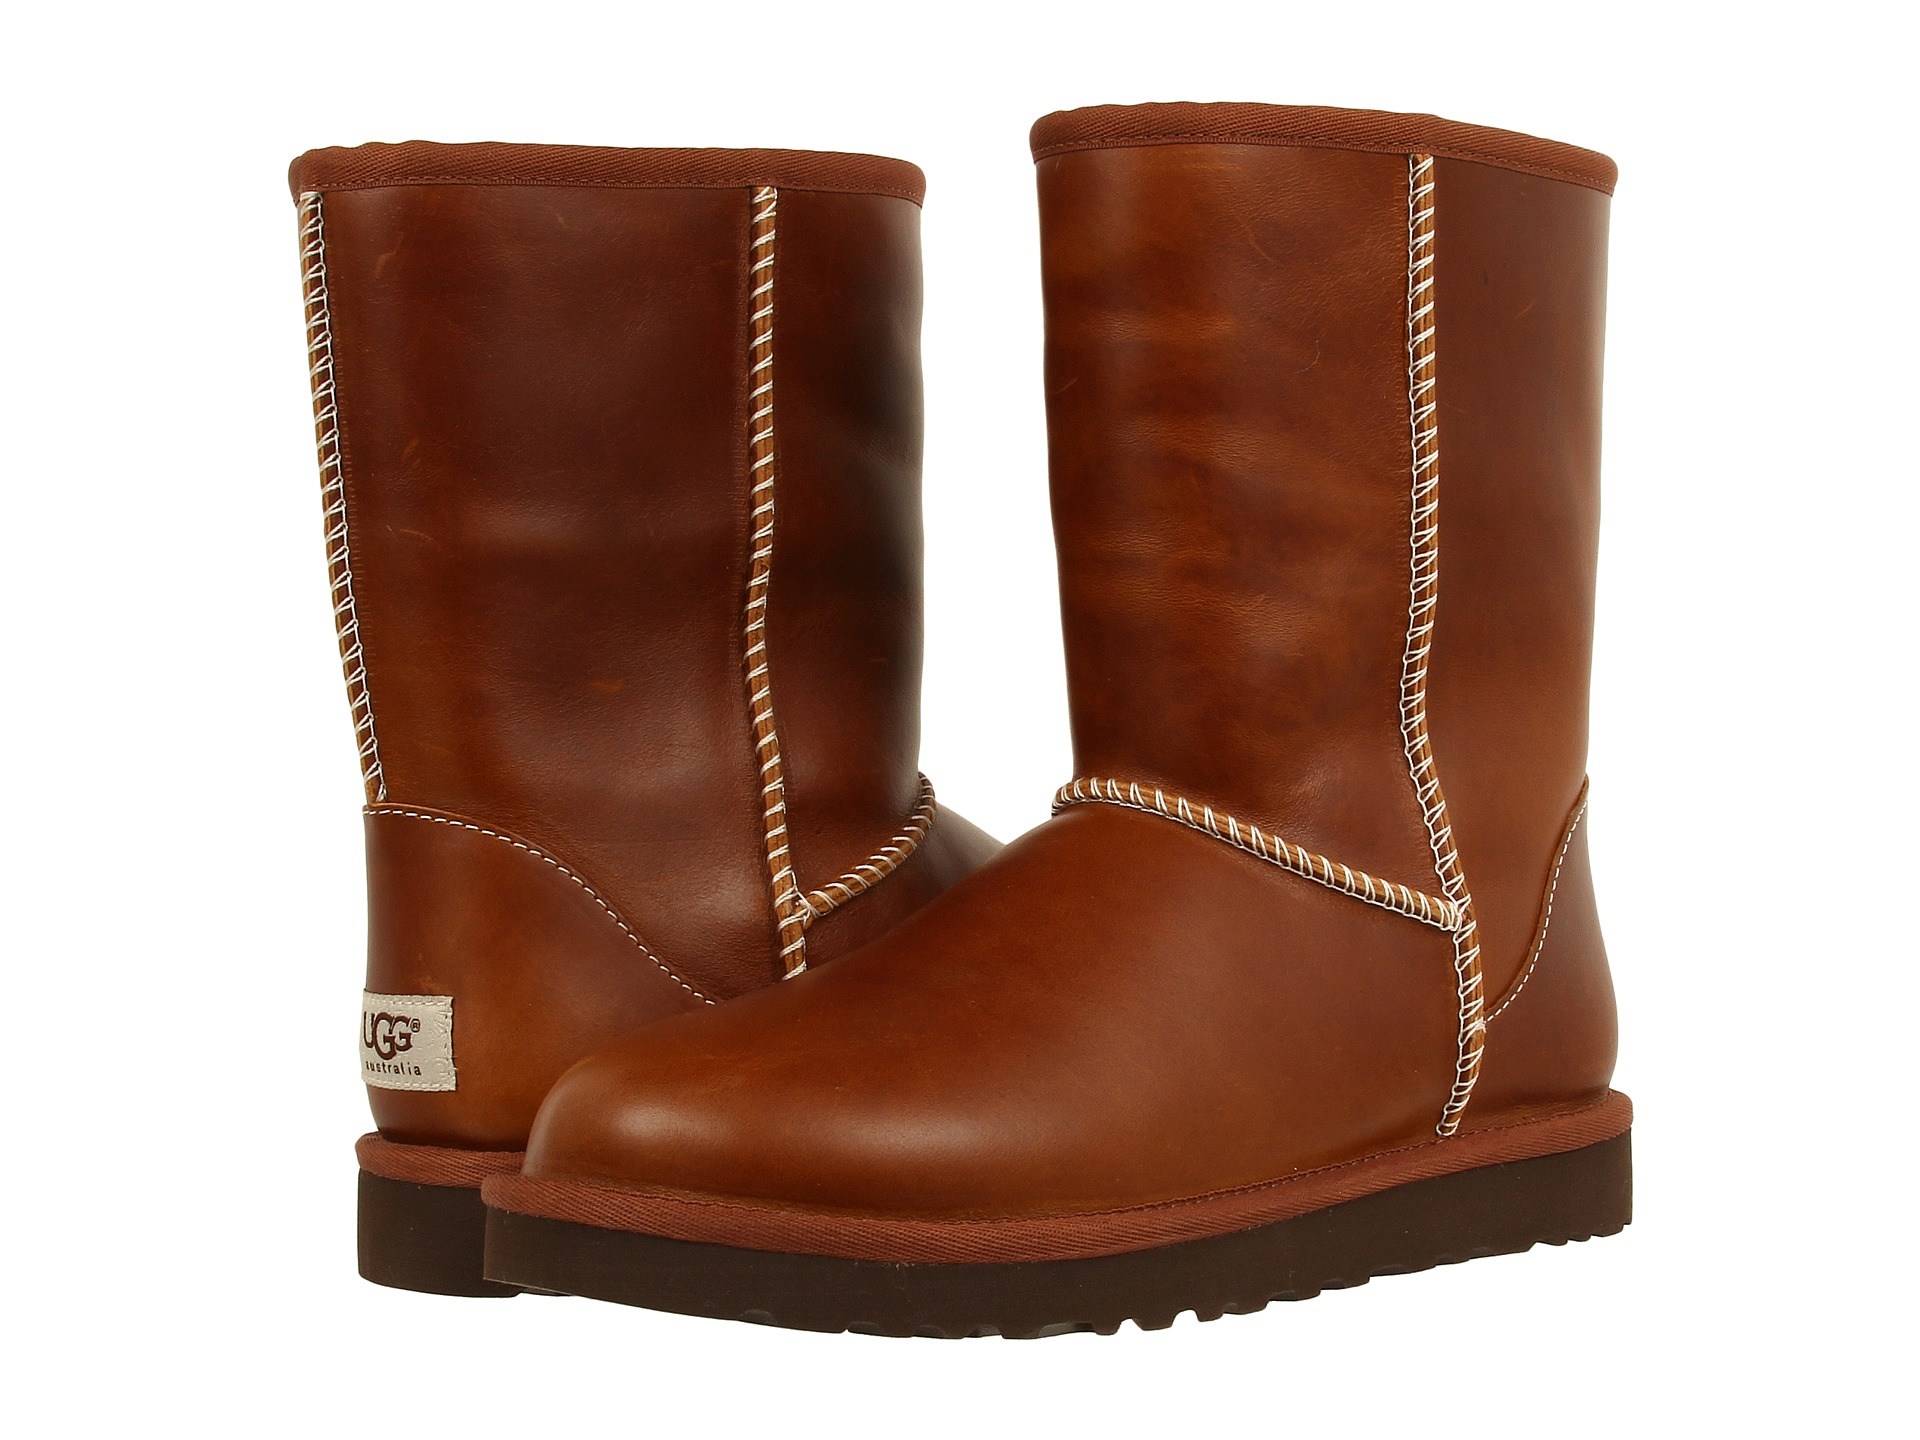 original australian ugg boots made in australia. buy online. we ship to all countries. buy in our sydney store 85 william st, darlinghurst, , nsw